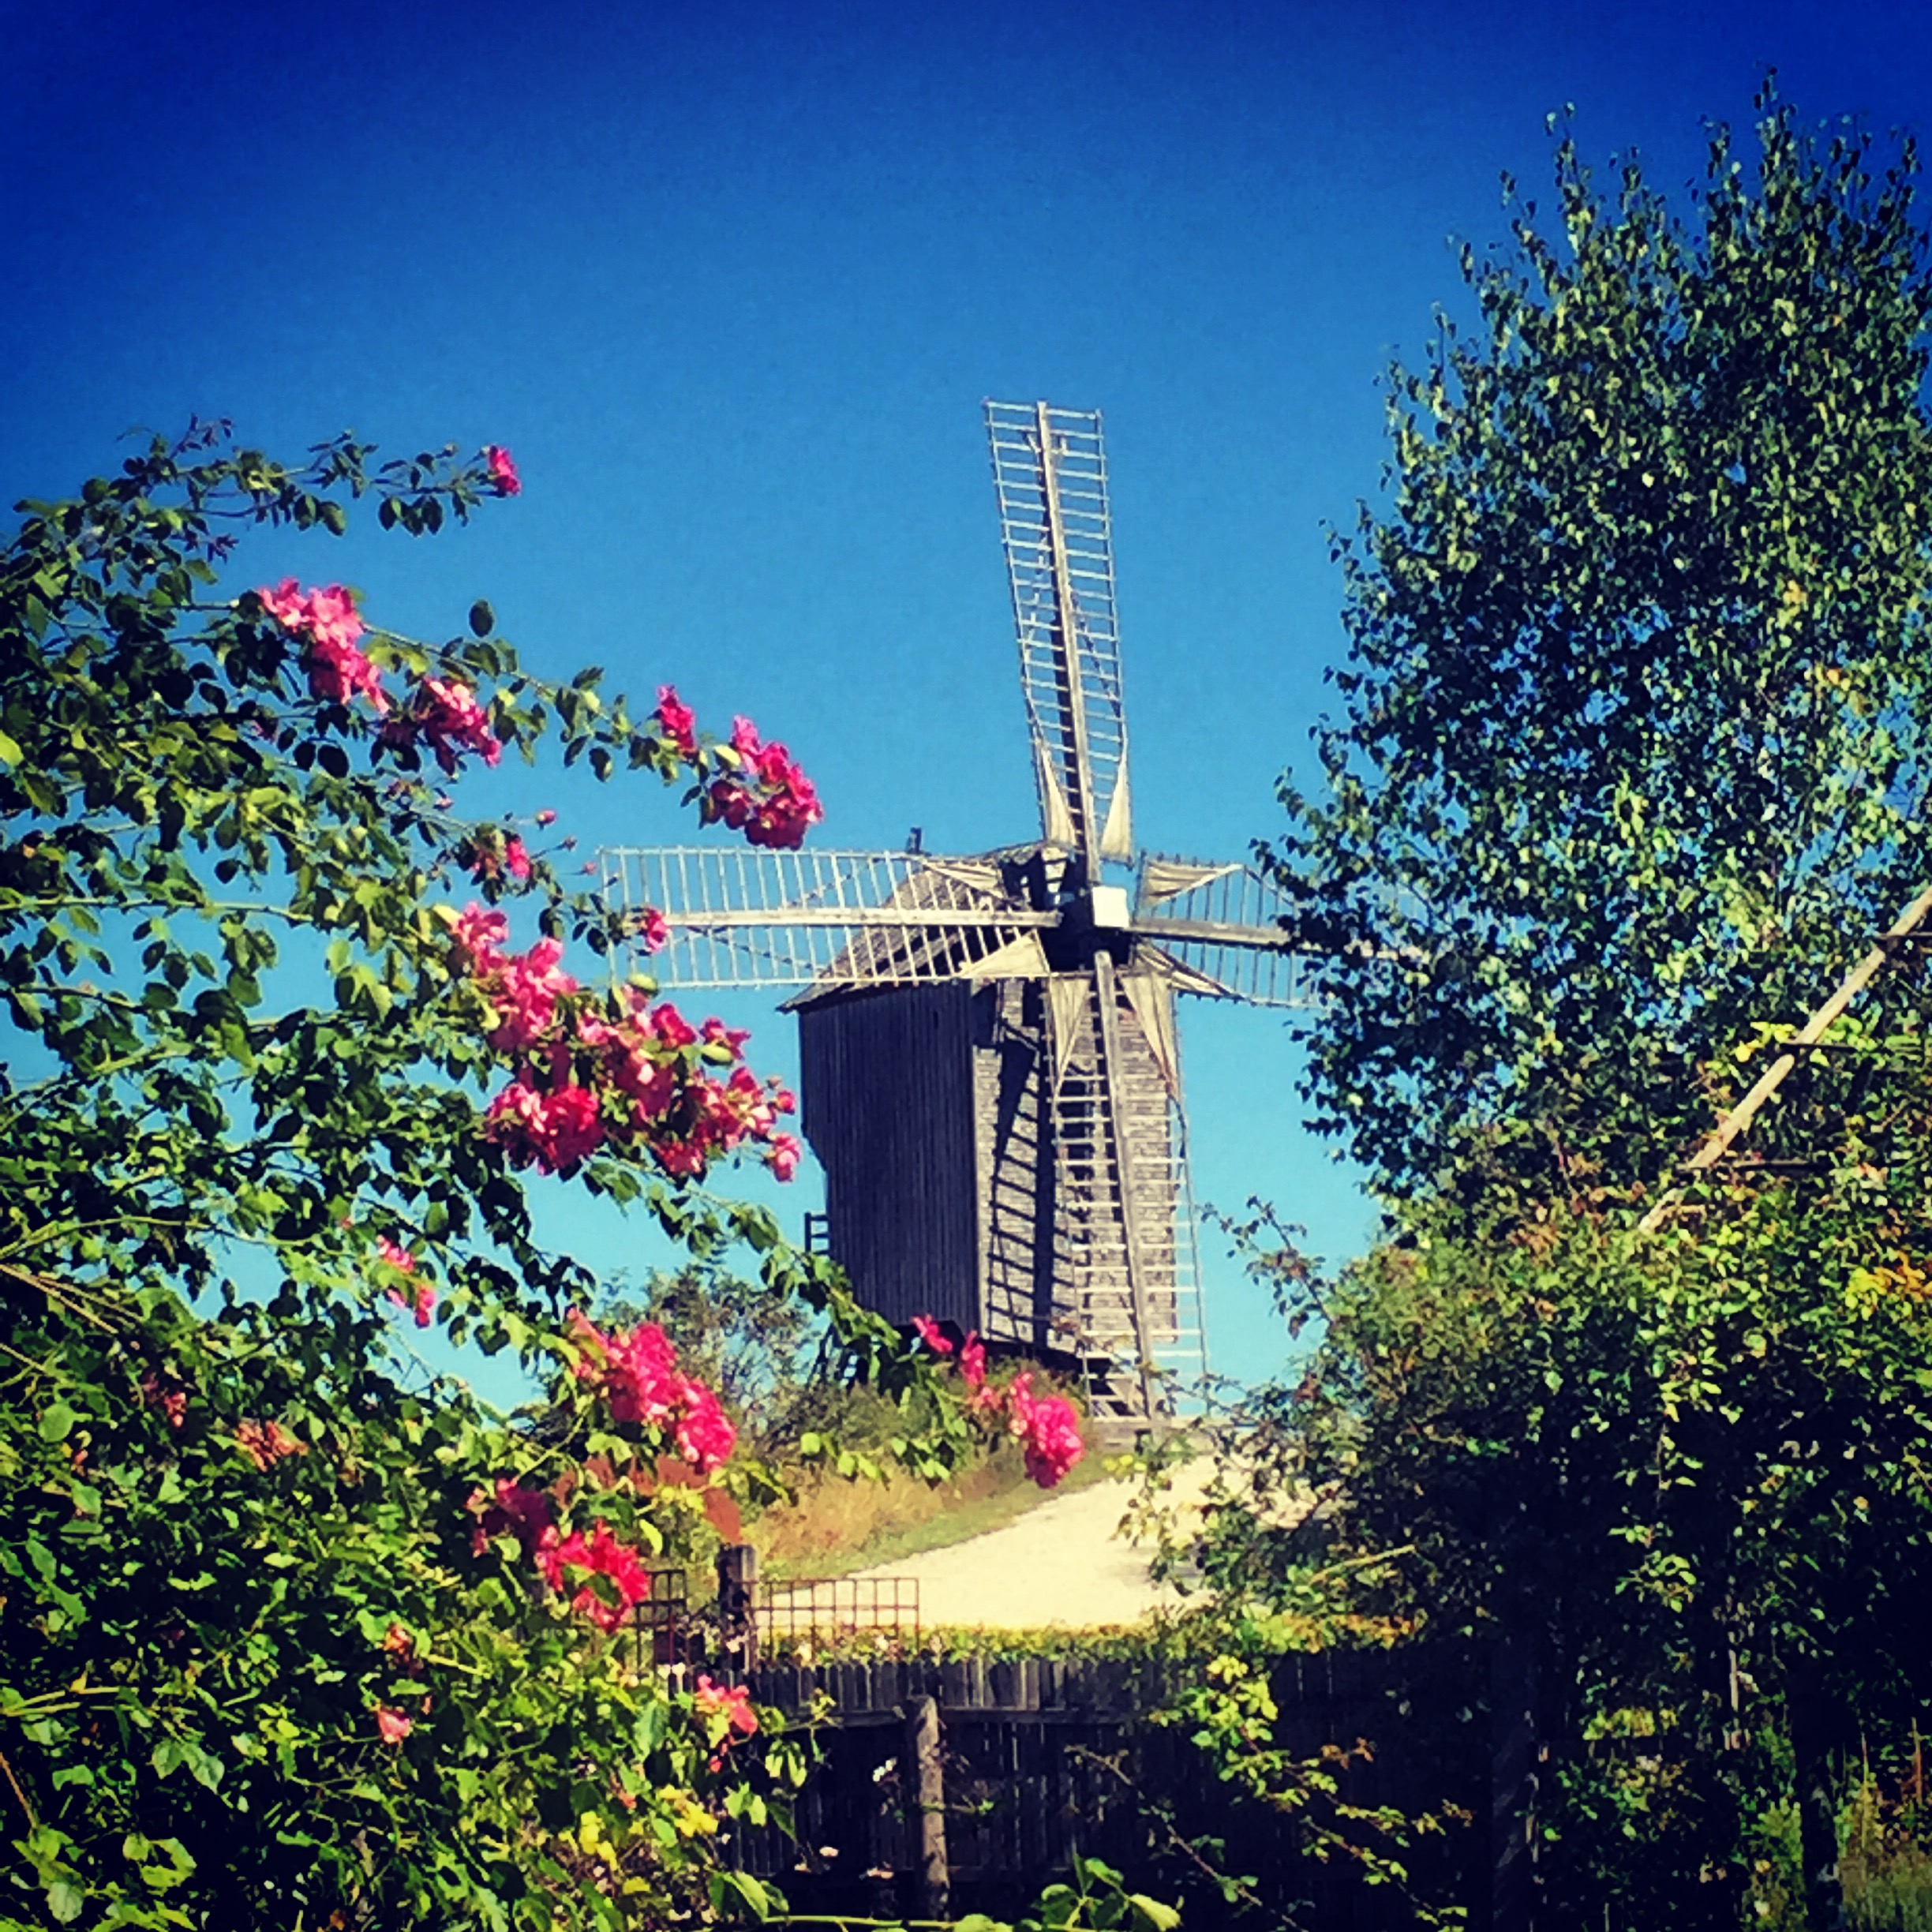 Moulin de Dosches (photo: SHD)